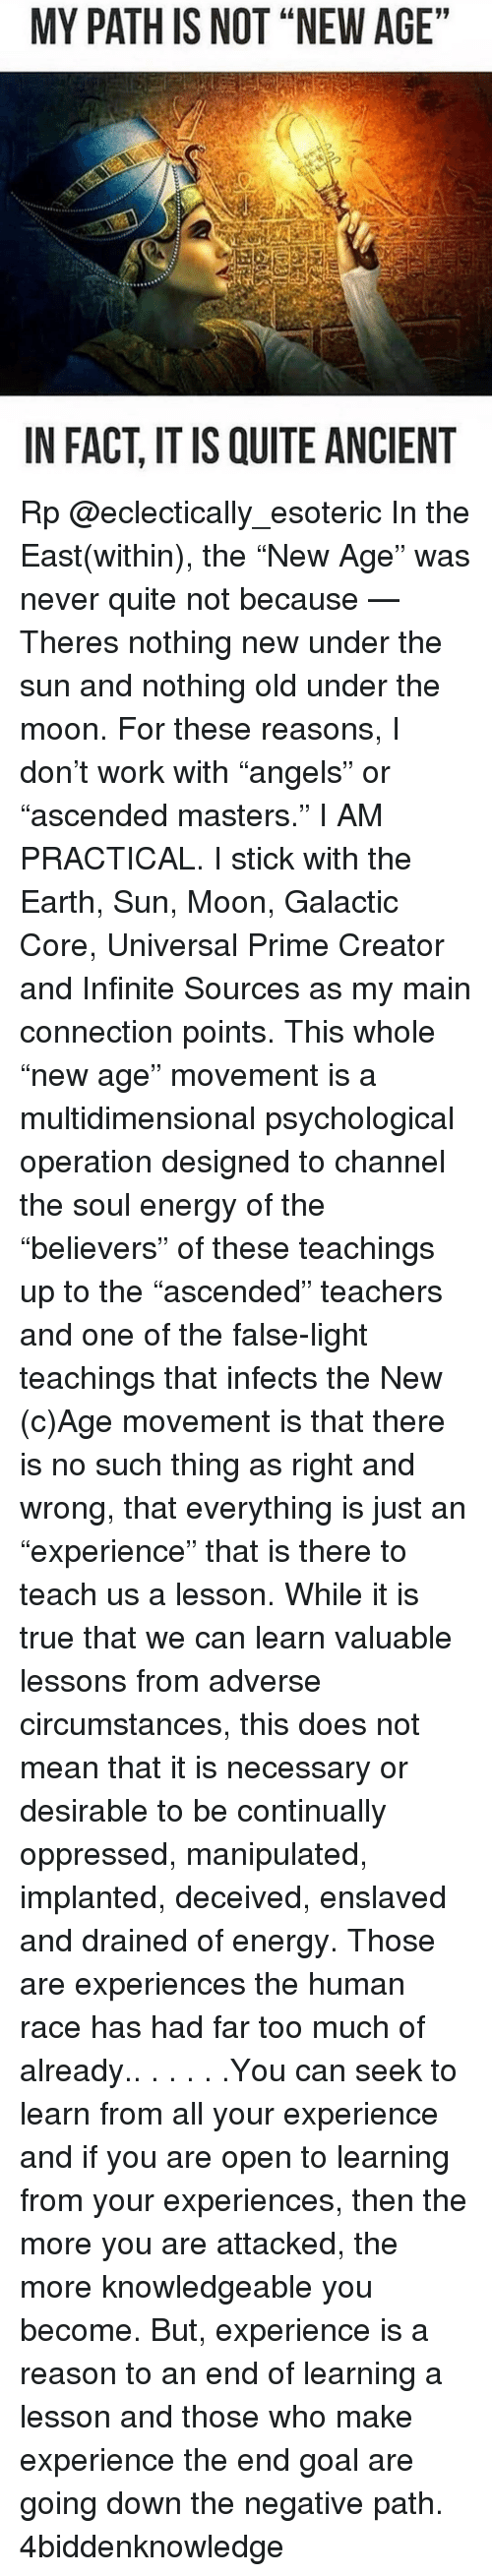 """Sun Moon: MY PATH IS NOT """"NEW AGE""""  IN FACT ITIS QUITE ANCIENT Rp @eclectically_esoteric In the East(within), the """"New Age"""" was never quite not because — Theres nothing new under the sun and nothing old under the moon. For these reasons, I don't work with """"angels"""" or """"ascended masters."""" I AM PRACTICAL. I stick with the Earth, Sun, Moon, Galactic Core, Universal Prime Creator and Infinite Sources as my main connection points. This whole """"new age"""" movement is a multidimensional psychological operation designed to channel the soul energy of the """"believers"""" of these teachings up to the """"ascended"""" teachers and one of the false-light teachings that infects the New (c)Age movement is that there is no such thing as right and wrong, that everything is just an """"experience"""" that is there to teach us a lesson. While it is true that we can learn valuable lessons from adverse circumstances, this does not mean that it is necessary or desirable to be continually oppressed, manipulated, implanted, deceived, enslaved and drained of energy. Those are experiences the human race has had far too much of already.. . . . . .You can seek to learn from all your experience and if you are open to learning from your experiences, then the more you are attacked, the more knowledgeable you become. But, experience is a reason to an end of learning a lesson and those who make experience the end goal are going down the negative path. 4biddenknowledge"""